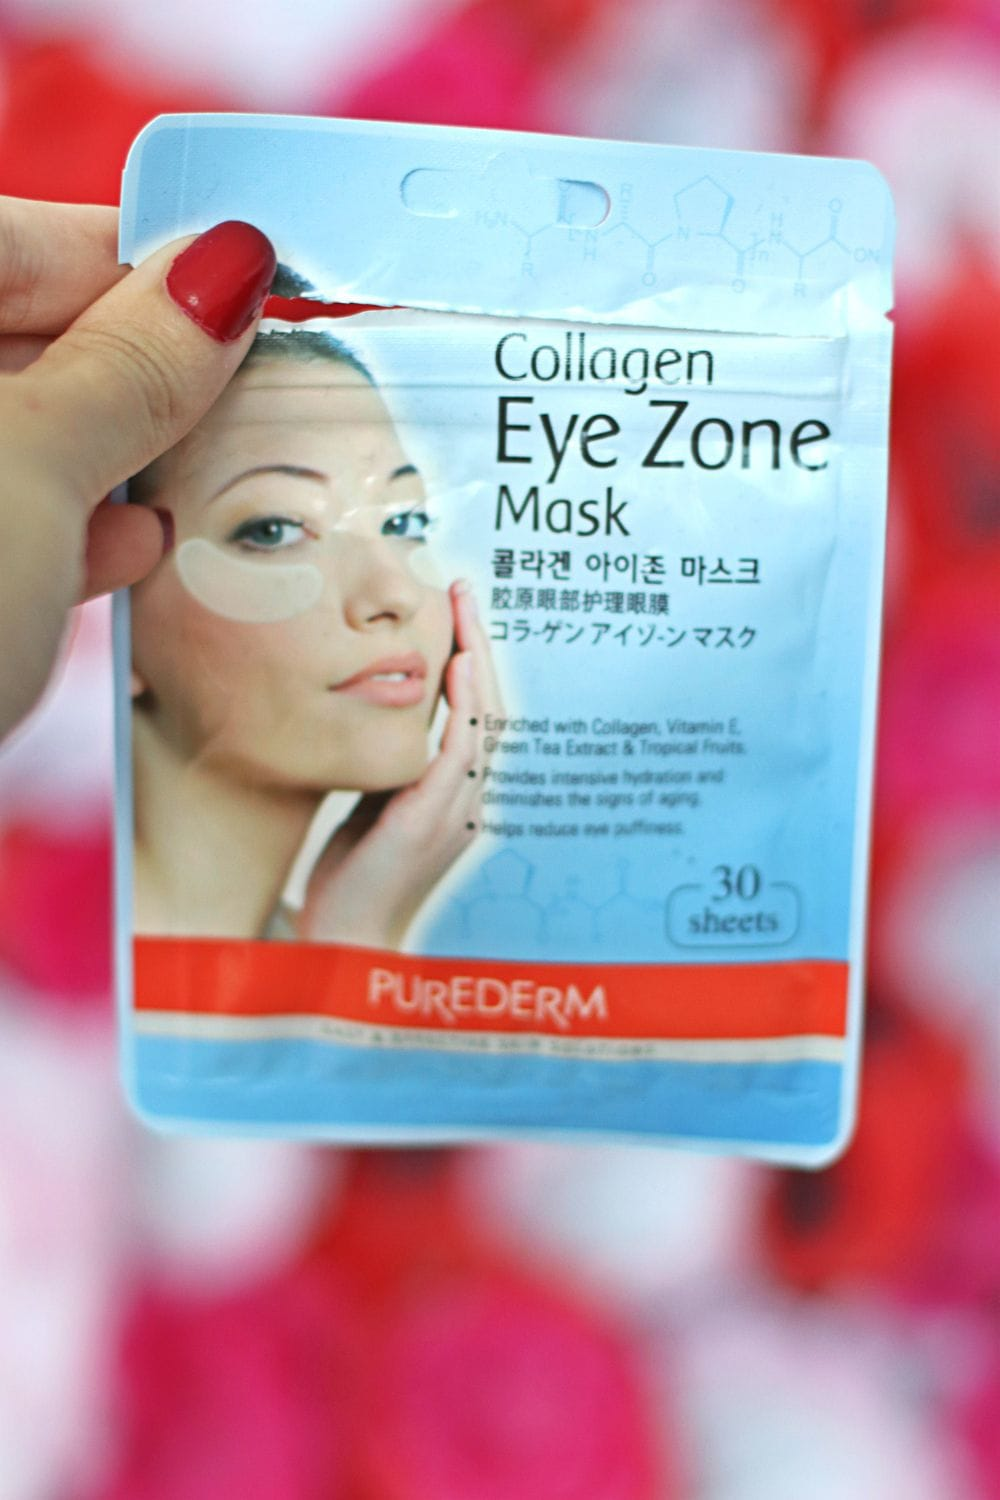 purederm collagen eye patches review mystyle5